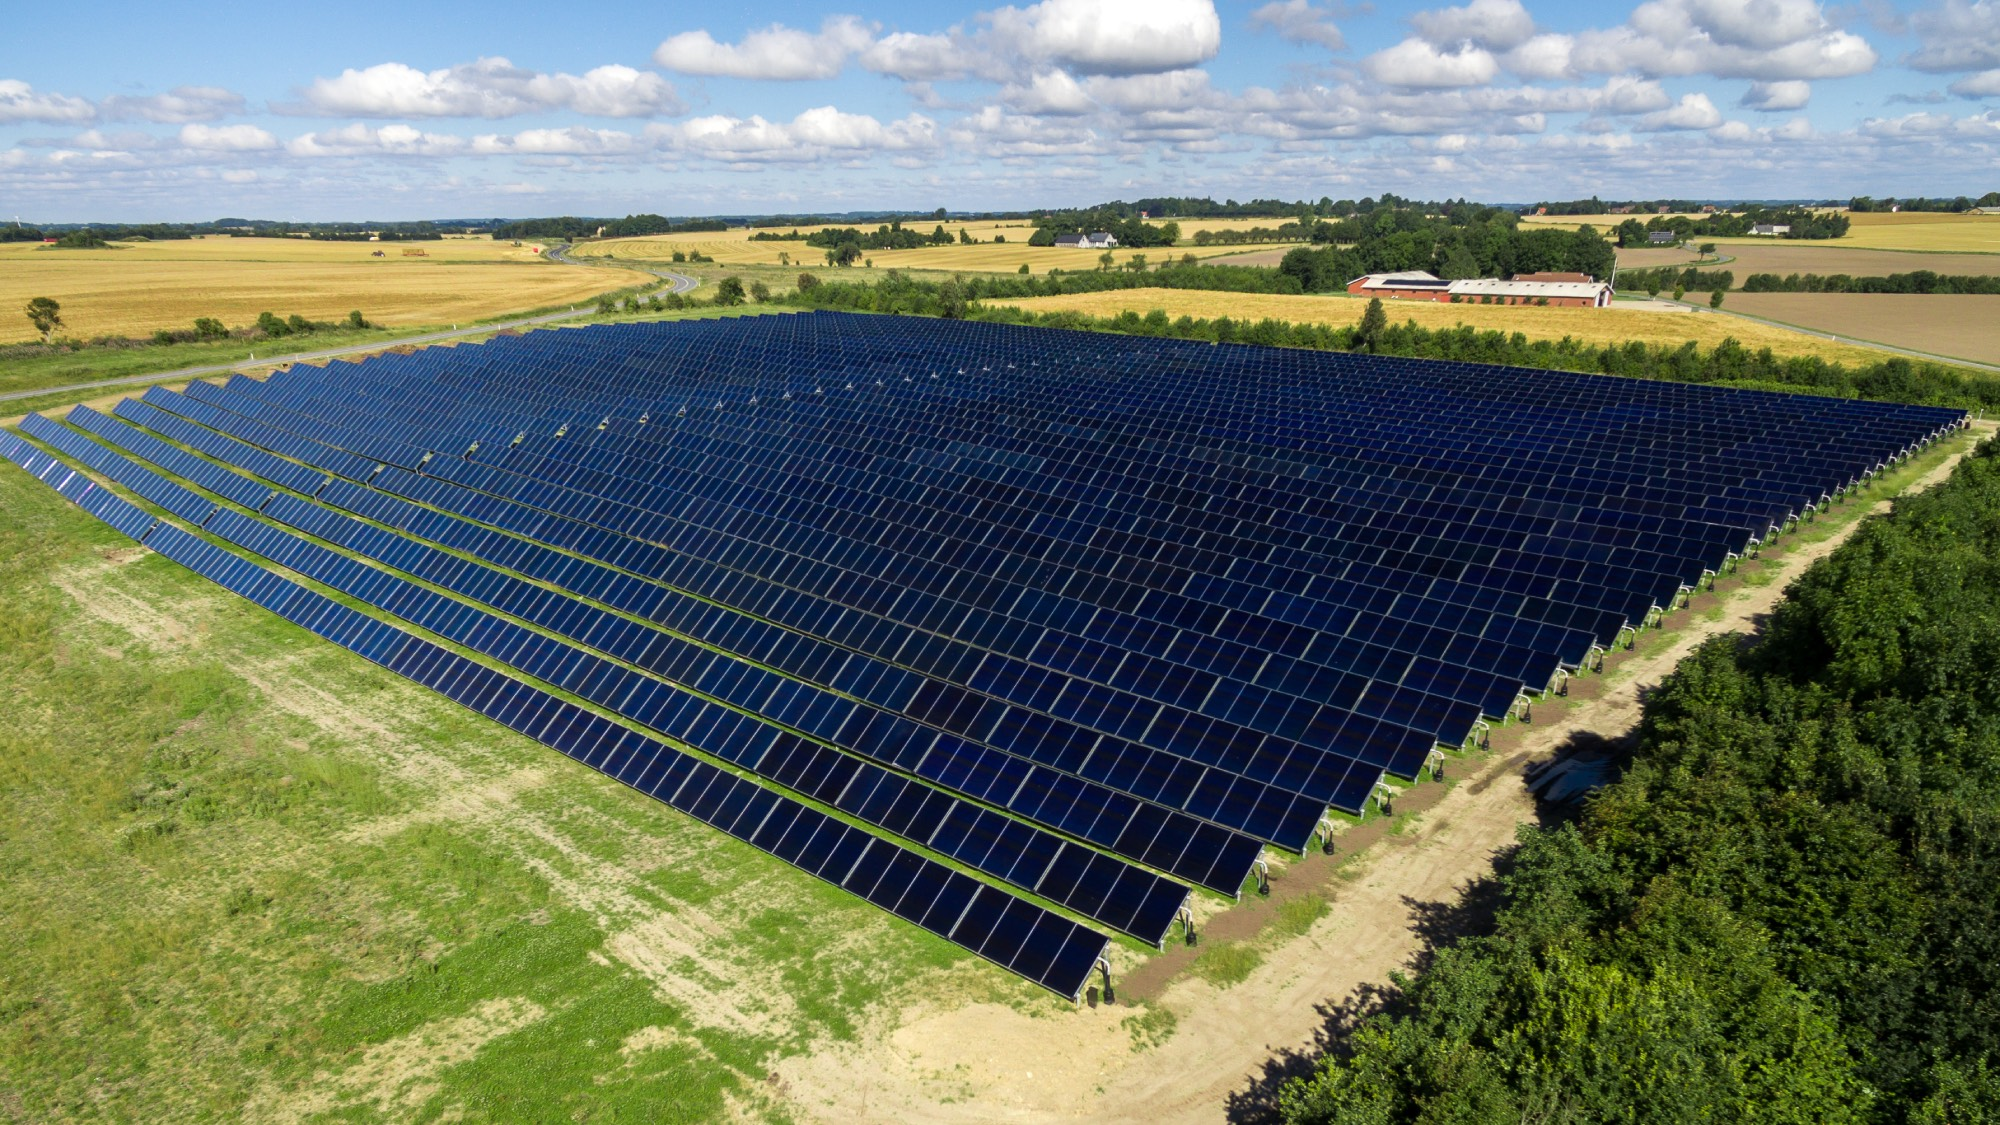 A solar thermal energy field